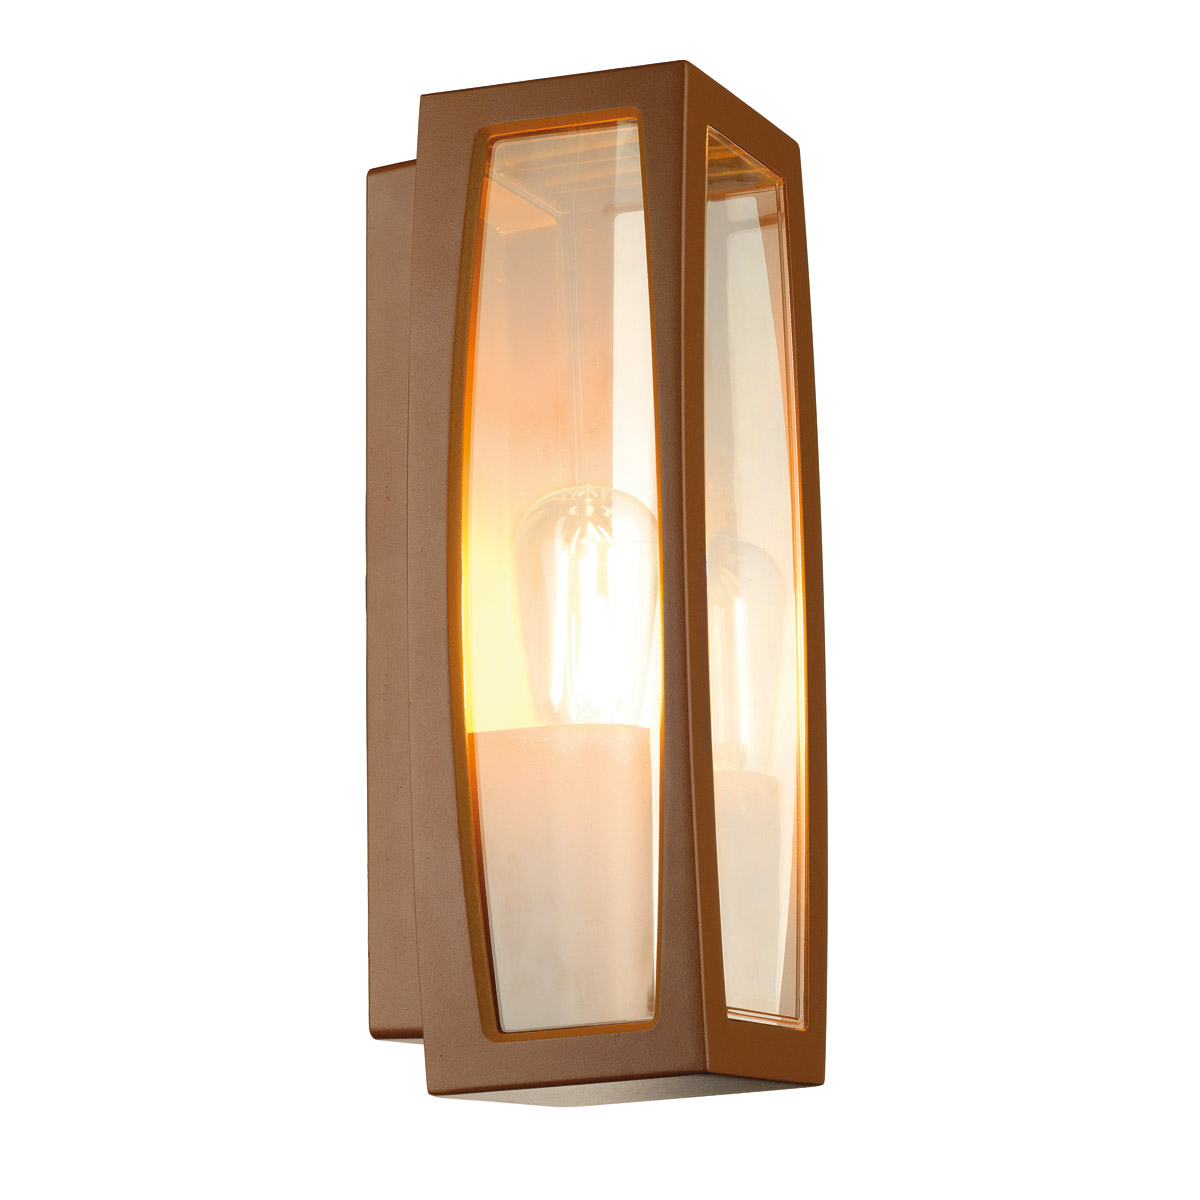 MERIDIAN BOX 2 outdoor luminaire, E27, max. 25W, rusty